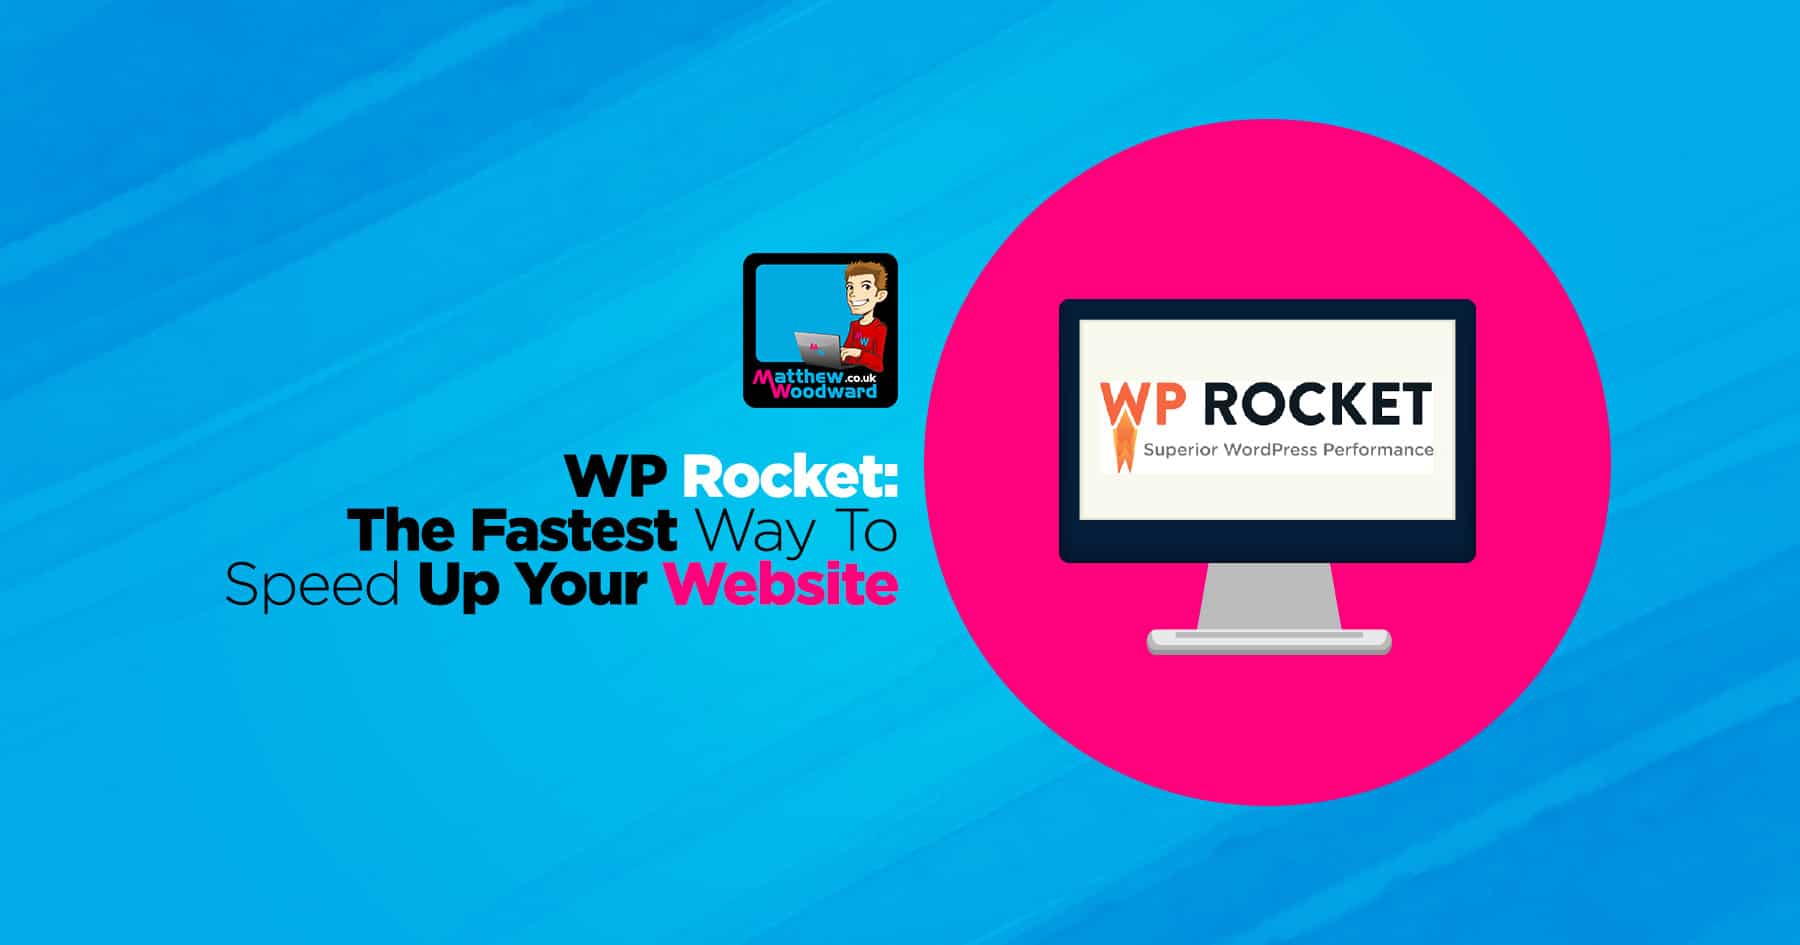 WP Rocket Review - The Easiest Way To Speed Up Your Site